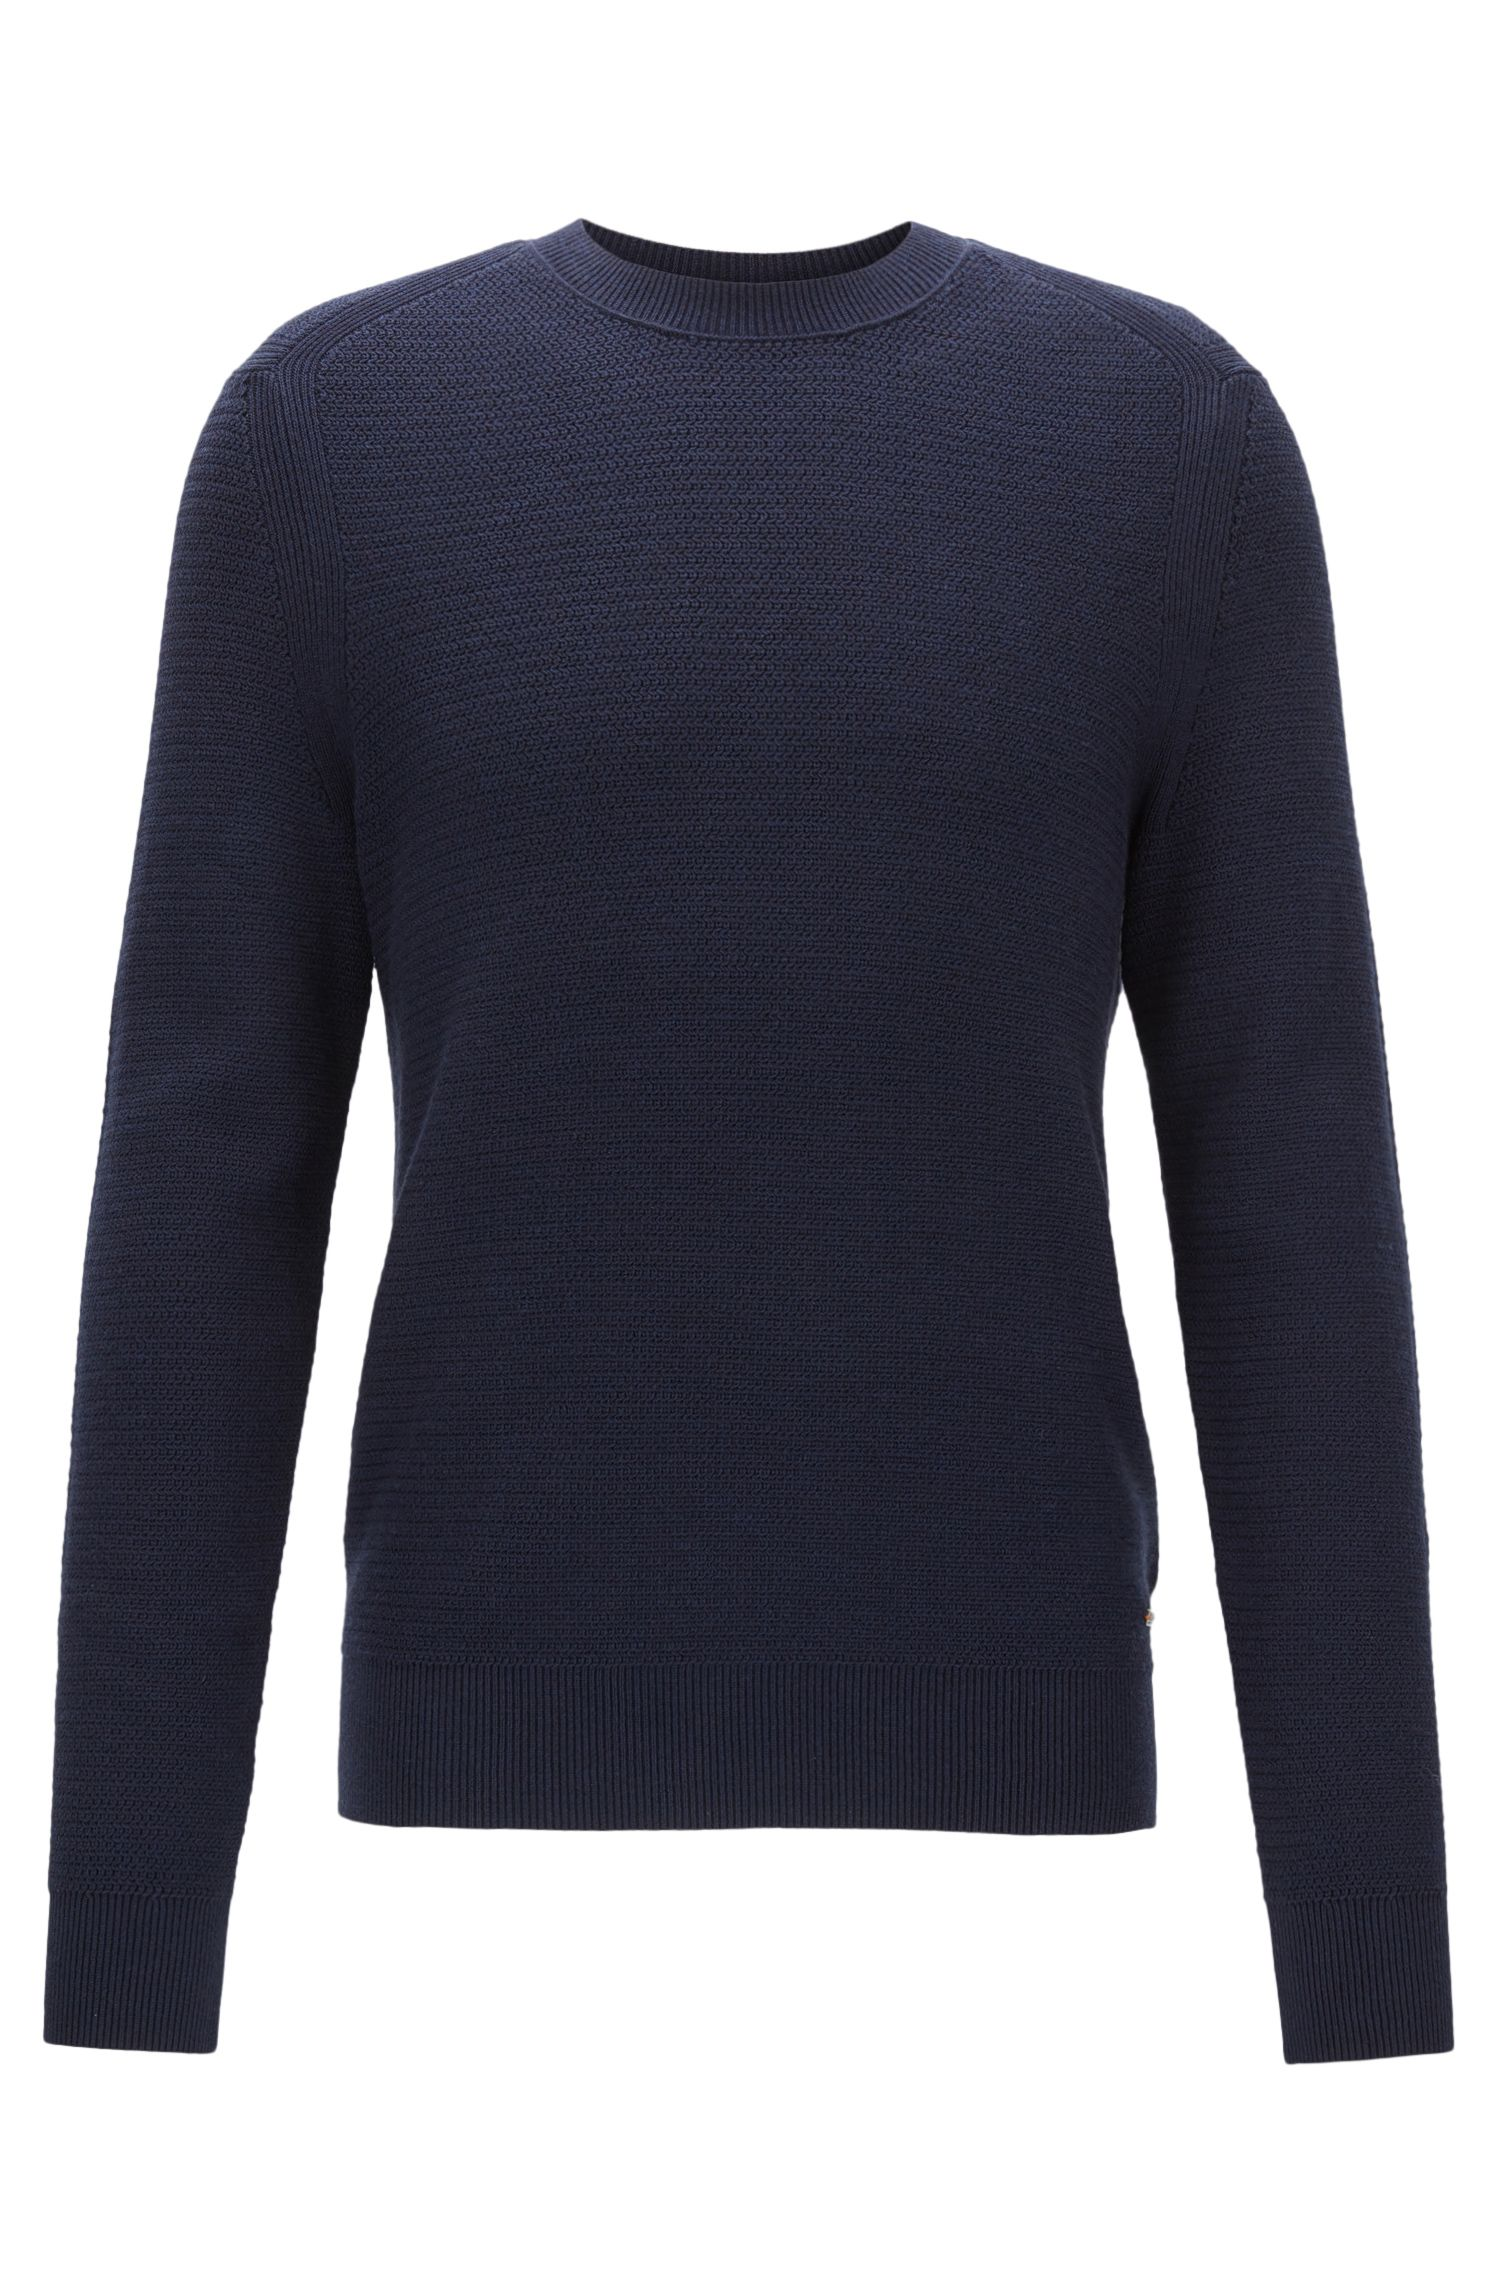 Cotton-blend sweater in a hybrid structured knit